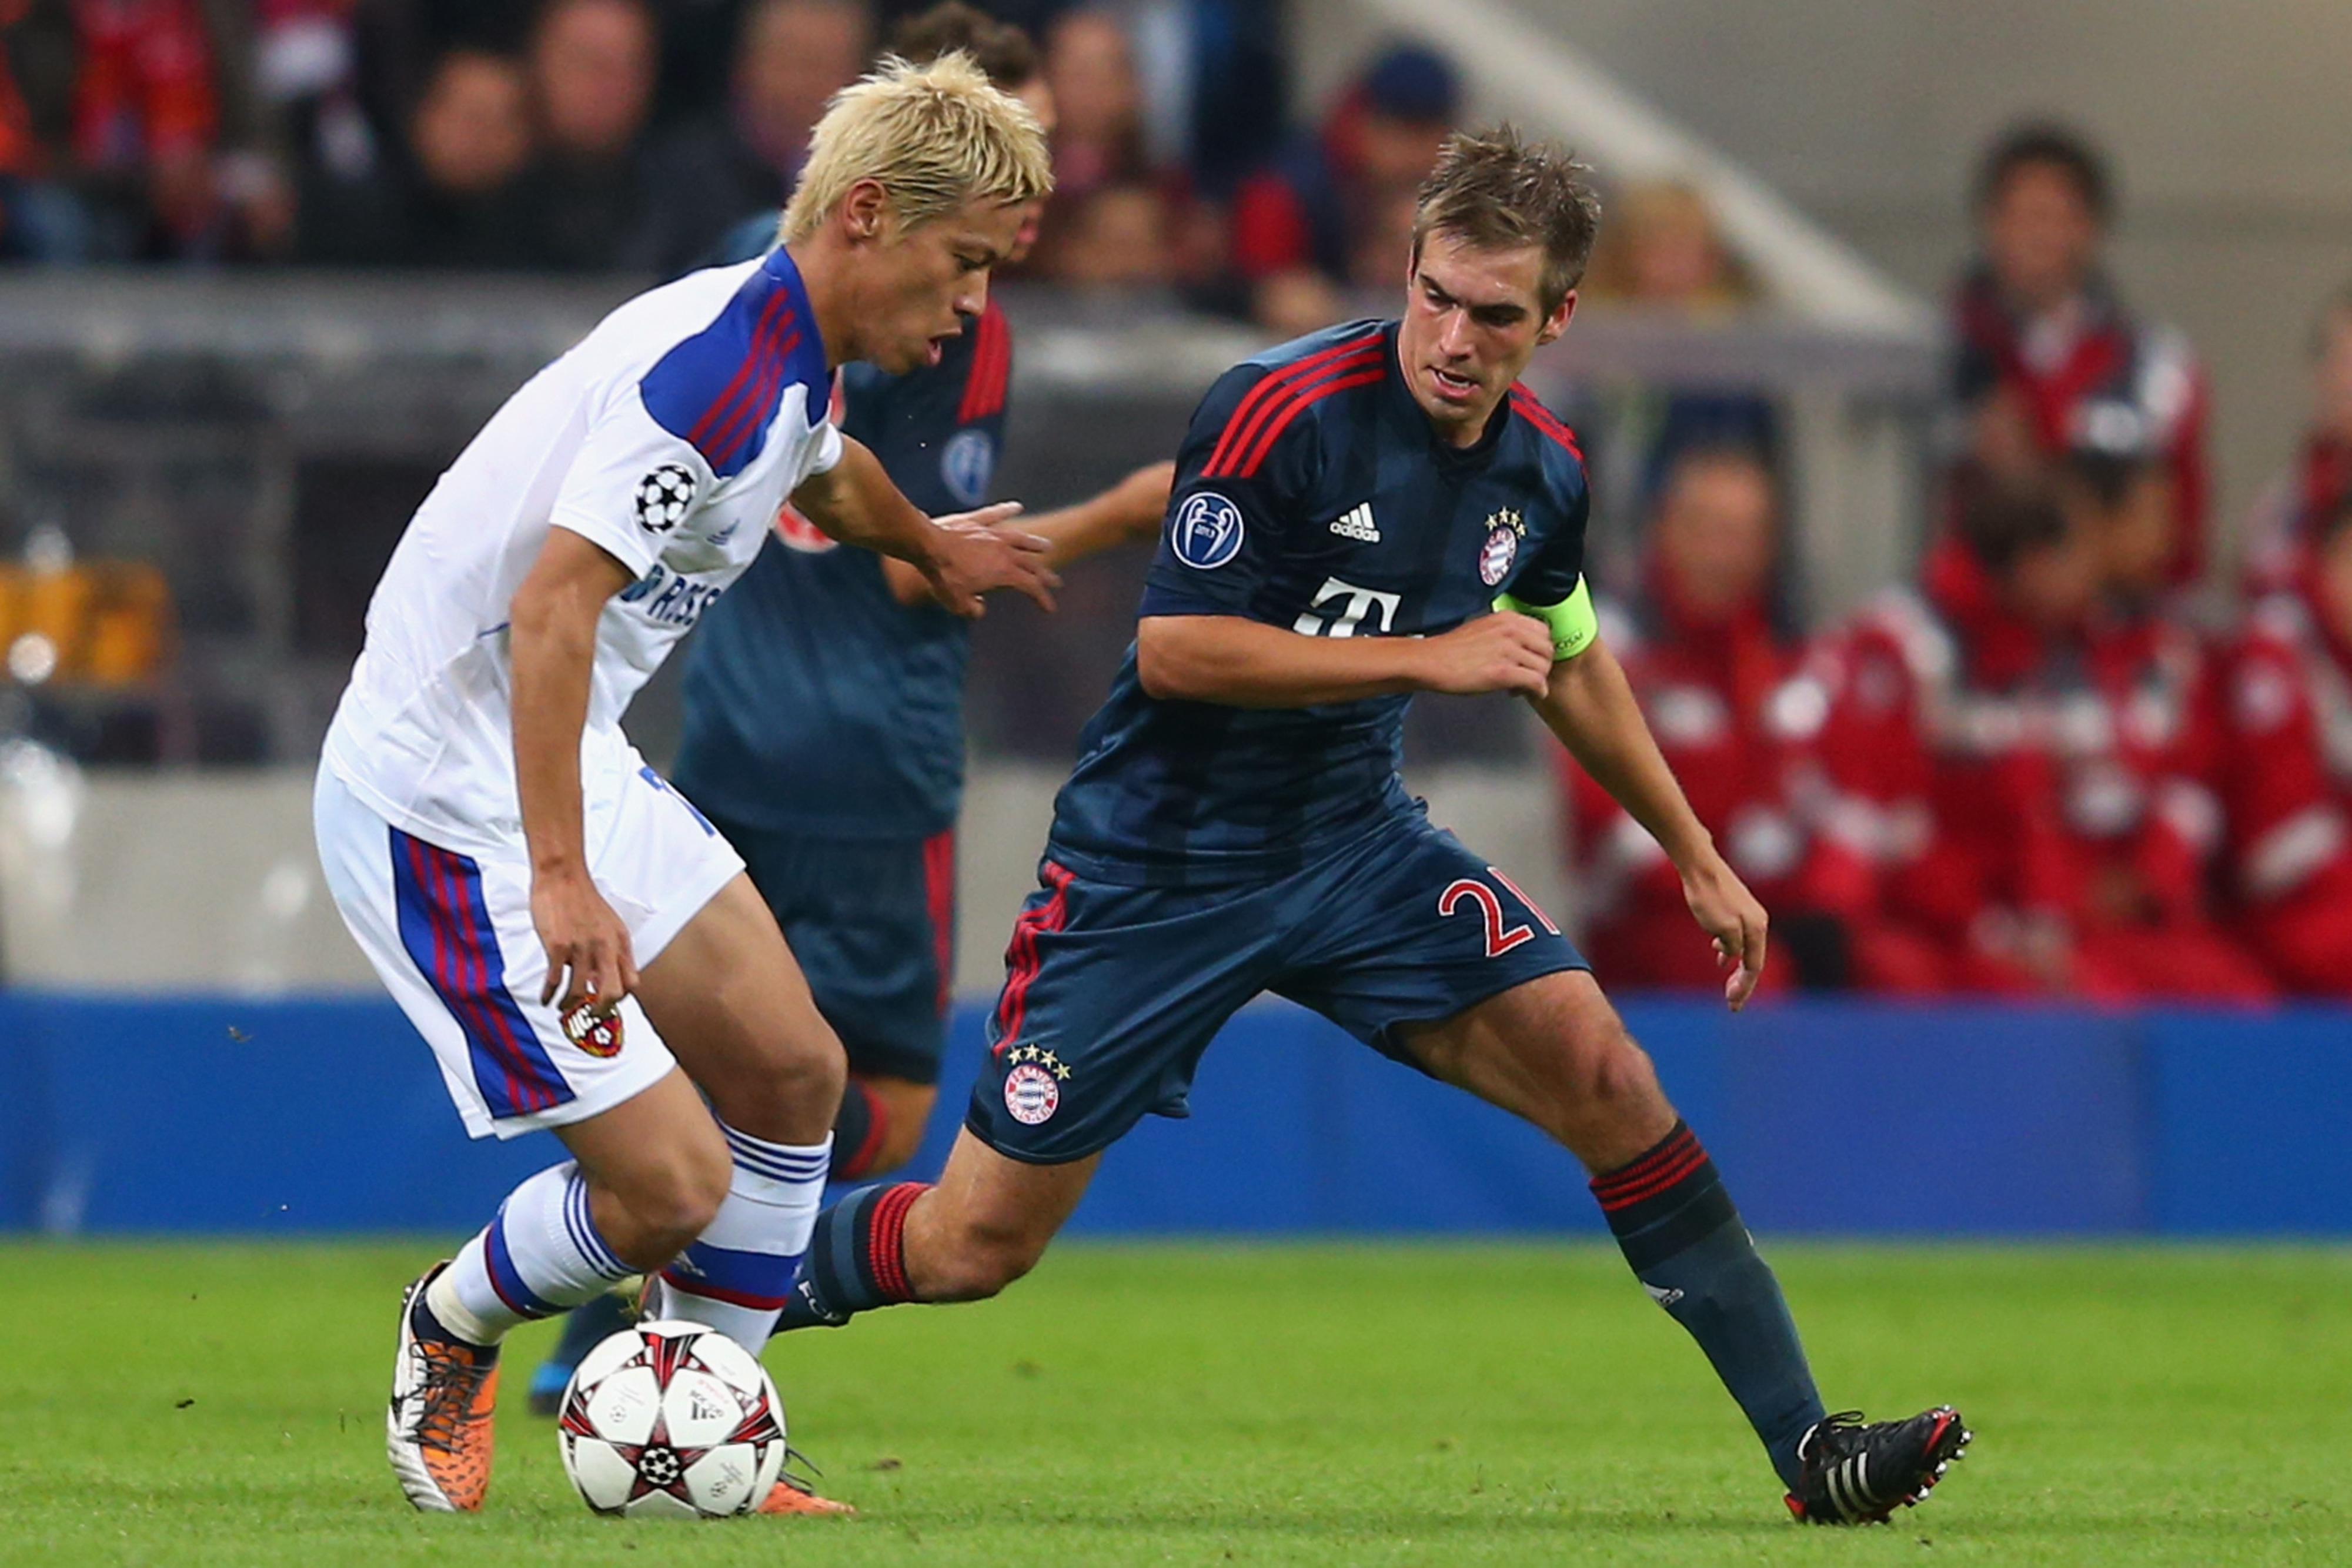 Philipp Lahm's midfield shift shows his understated quality